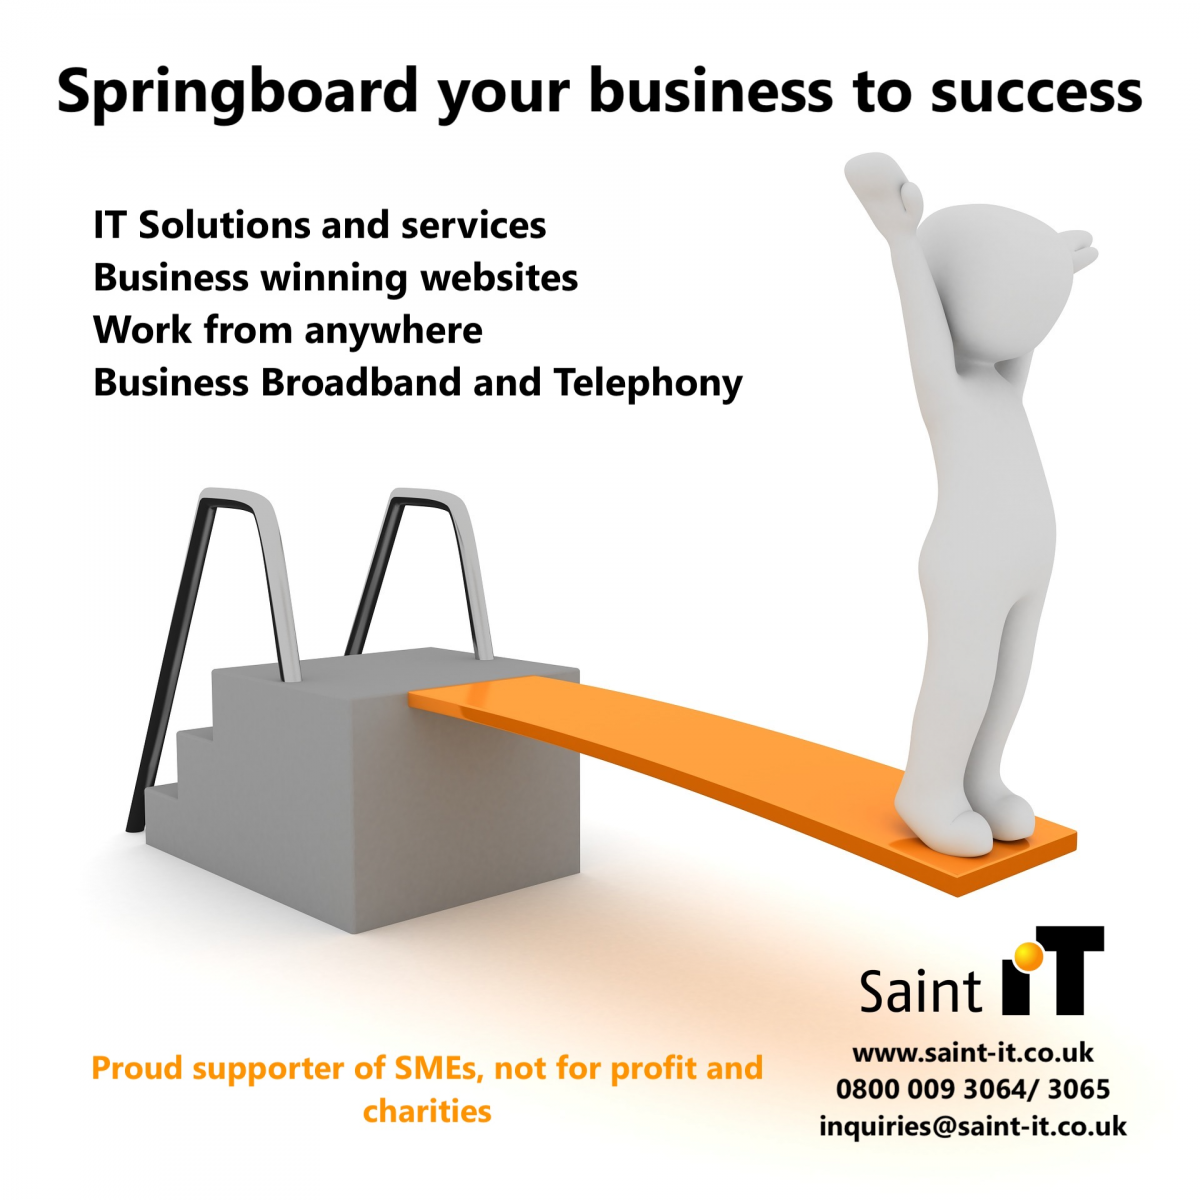 Ready to discuss improving your business IT?